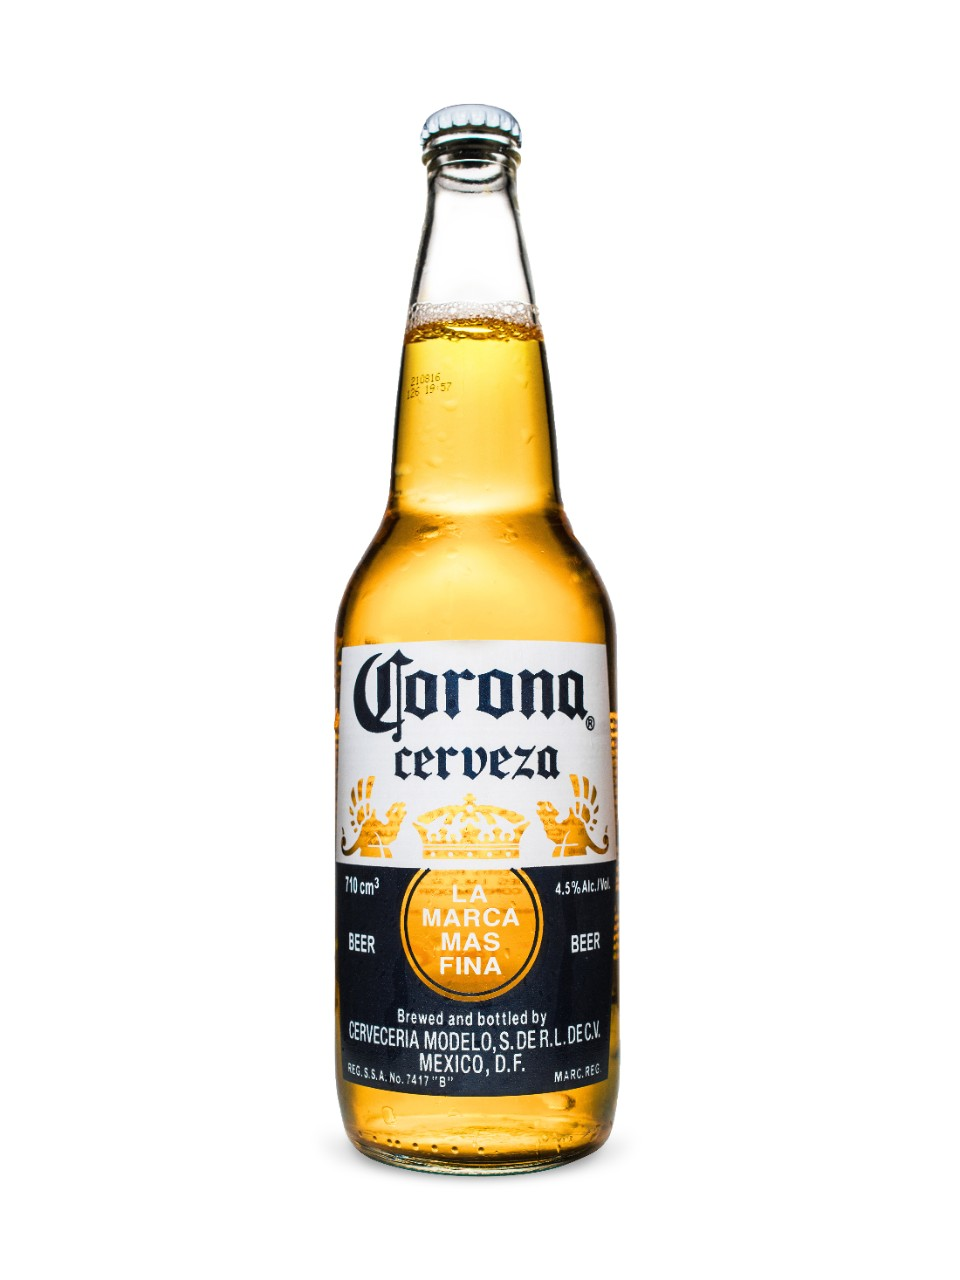 corona beer case analysis In early june 1997, the managing director and vice chairman of grupo modelo reviewing the performance of corona beer in the us market despite a much higher sales growth rate, still drawn corona heineken, the no 1 imported beer brand in the us market.